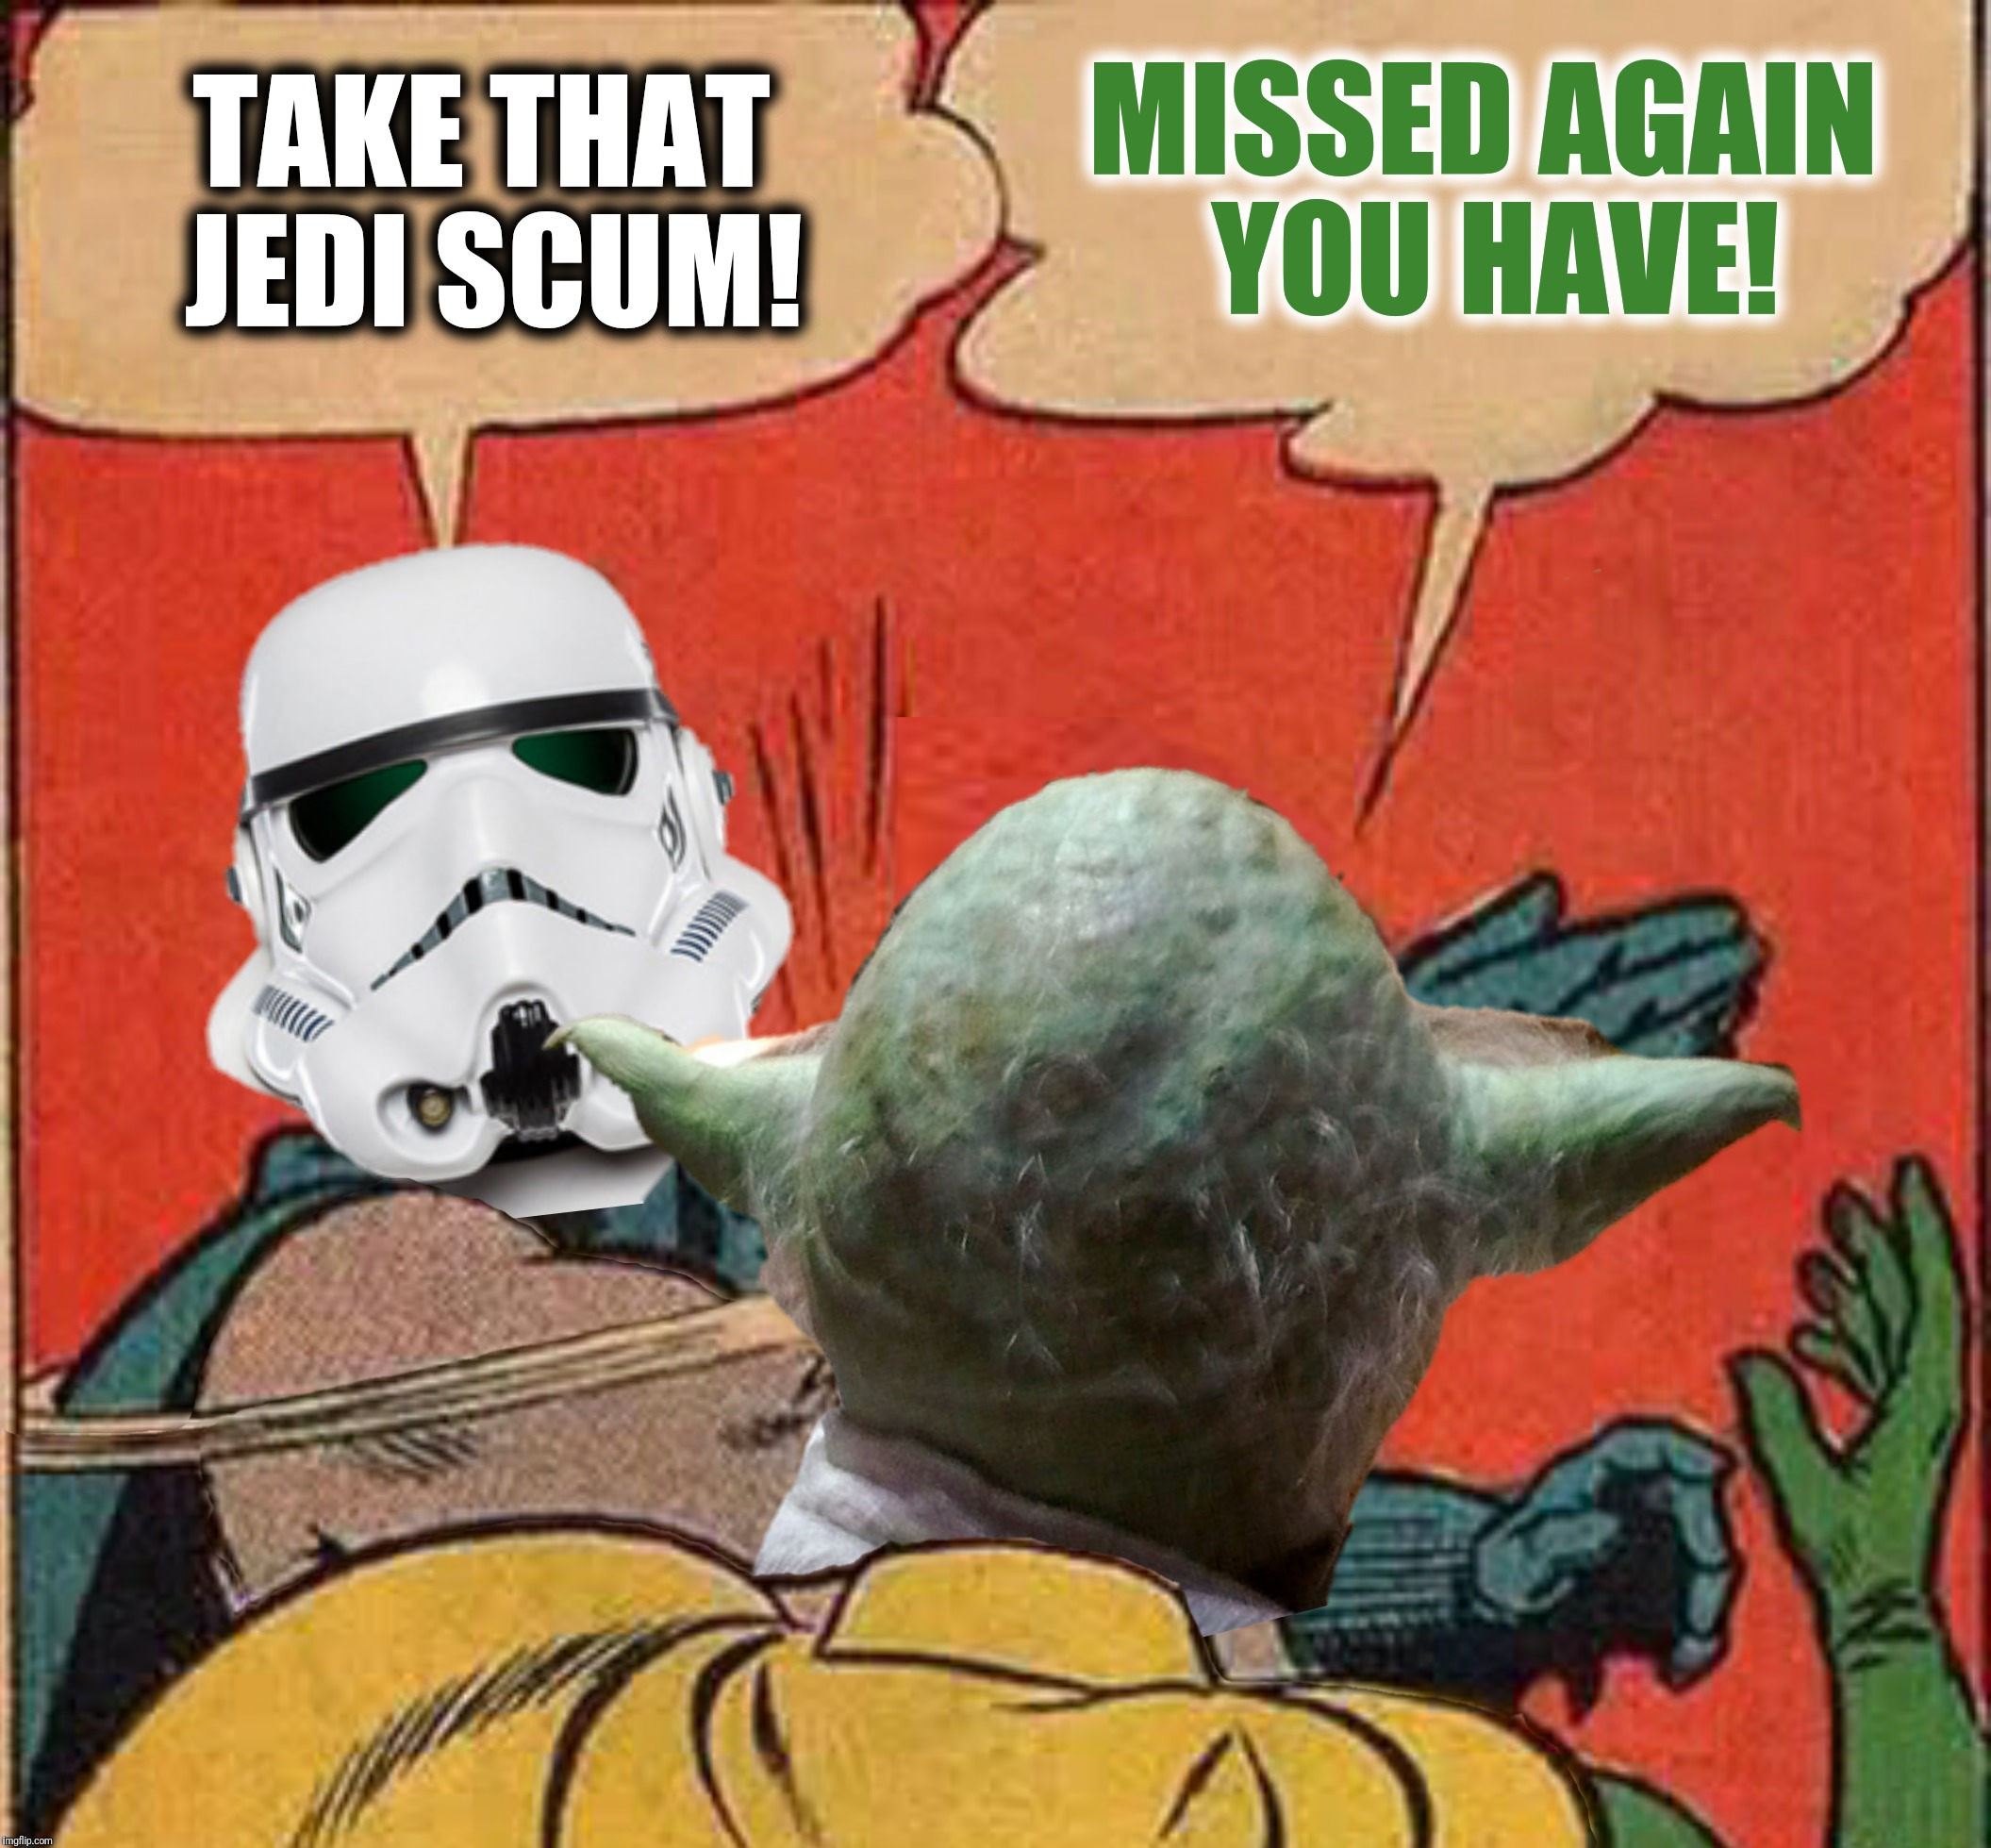 Bad Photoshop Sunday presents:  Stormtrooper missing Yoda  | TAKE THAT JEDI SCUM! MISSED AGAIN YOU HAVE! | image tagged in bad photoshop sunday,batman slapping robin,star wars,yoda,stormtrooper,stormtrooper missing yoda | made w/ Imgflip meme maker